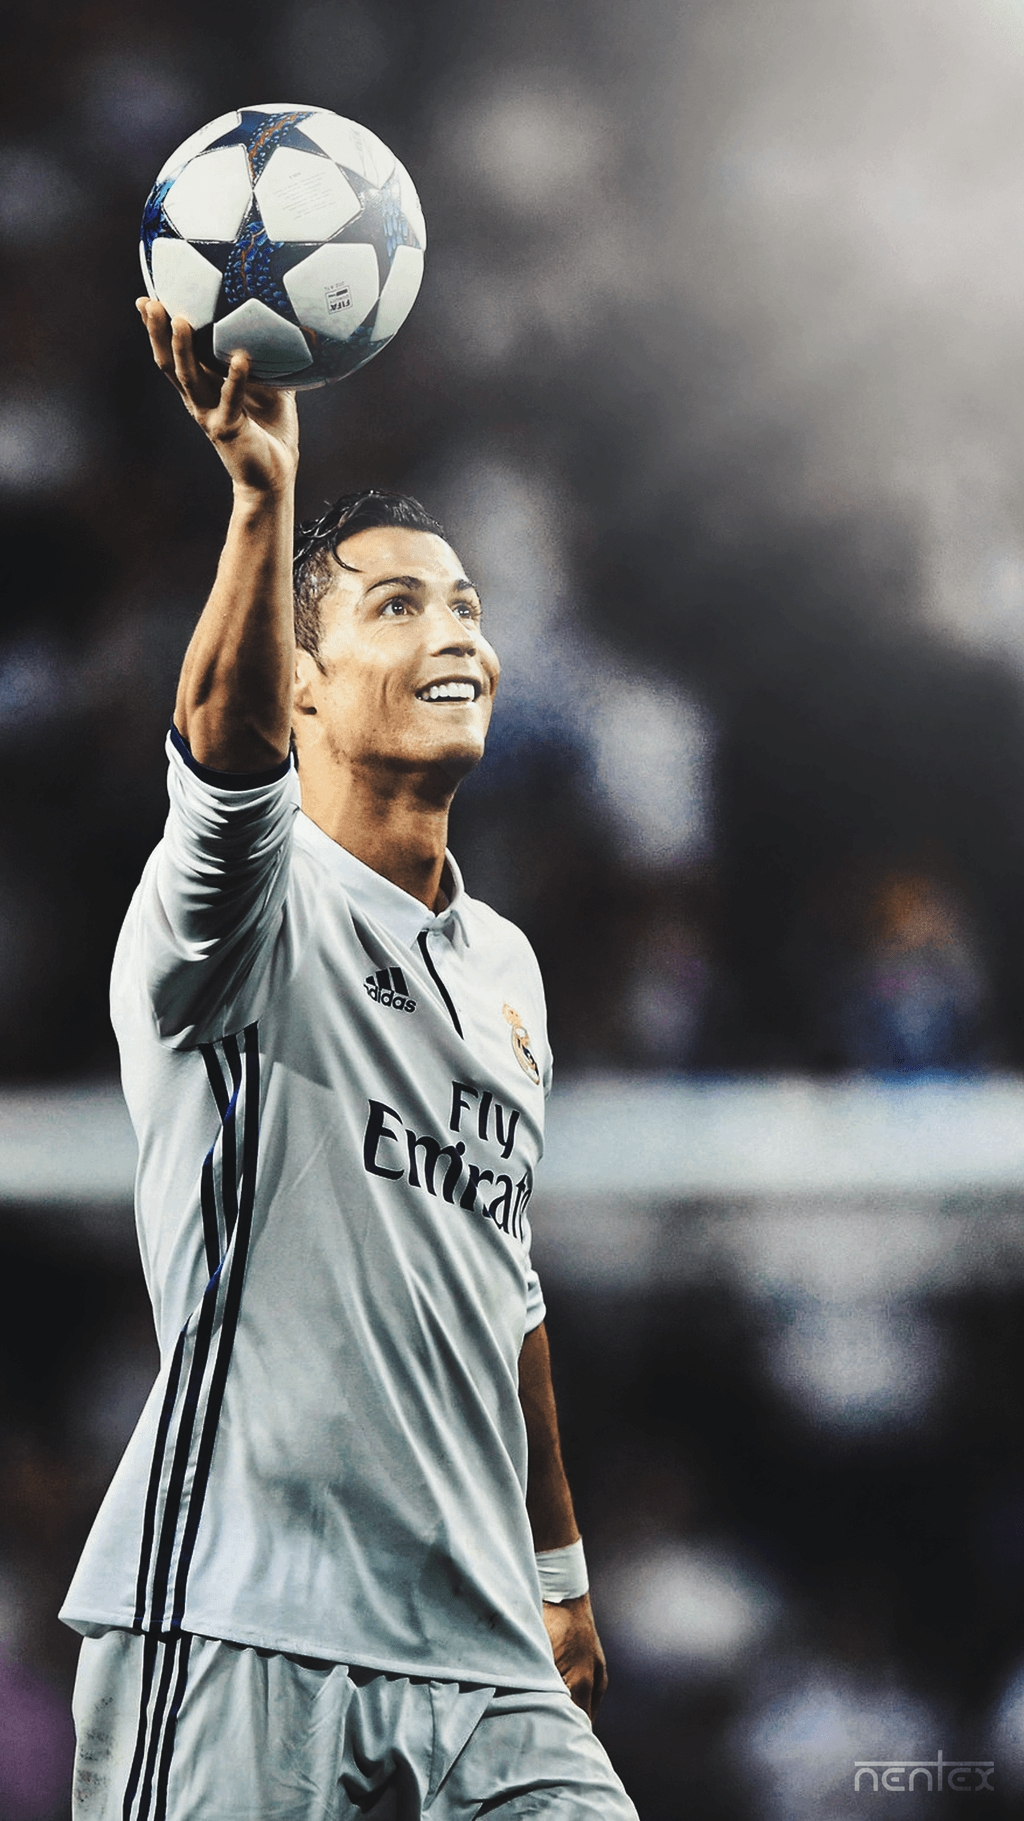 cristiano ronaldo hd 2017 wallpapers - wallpaper cave